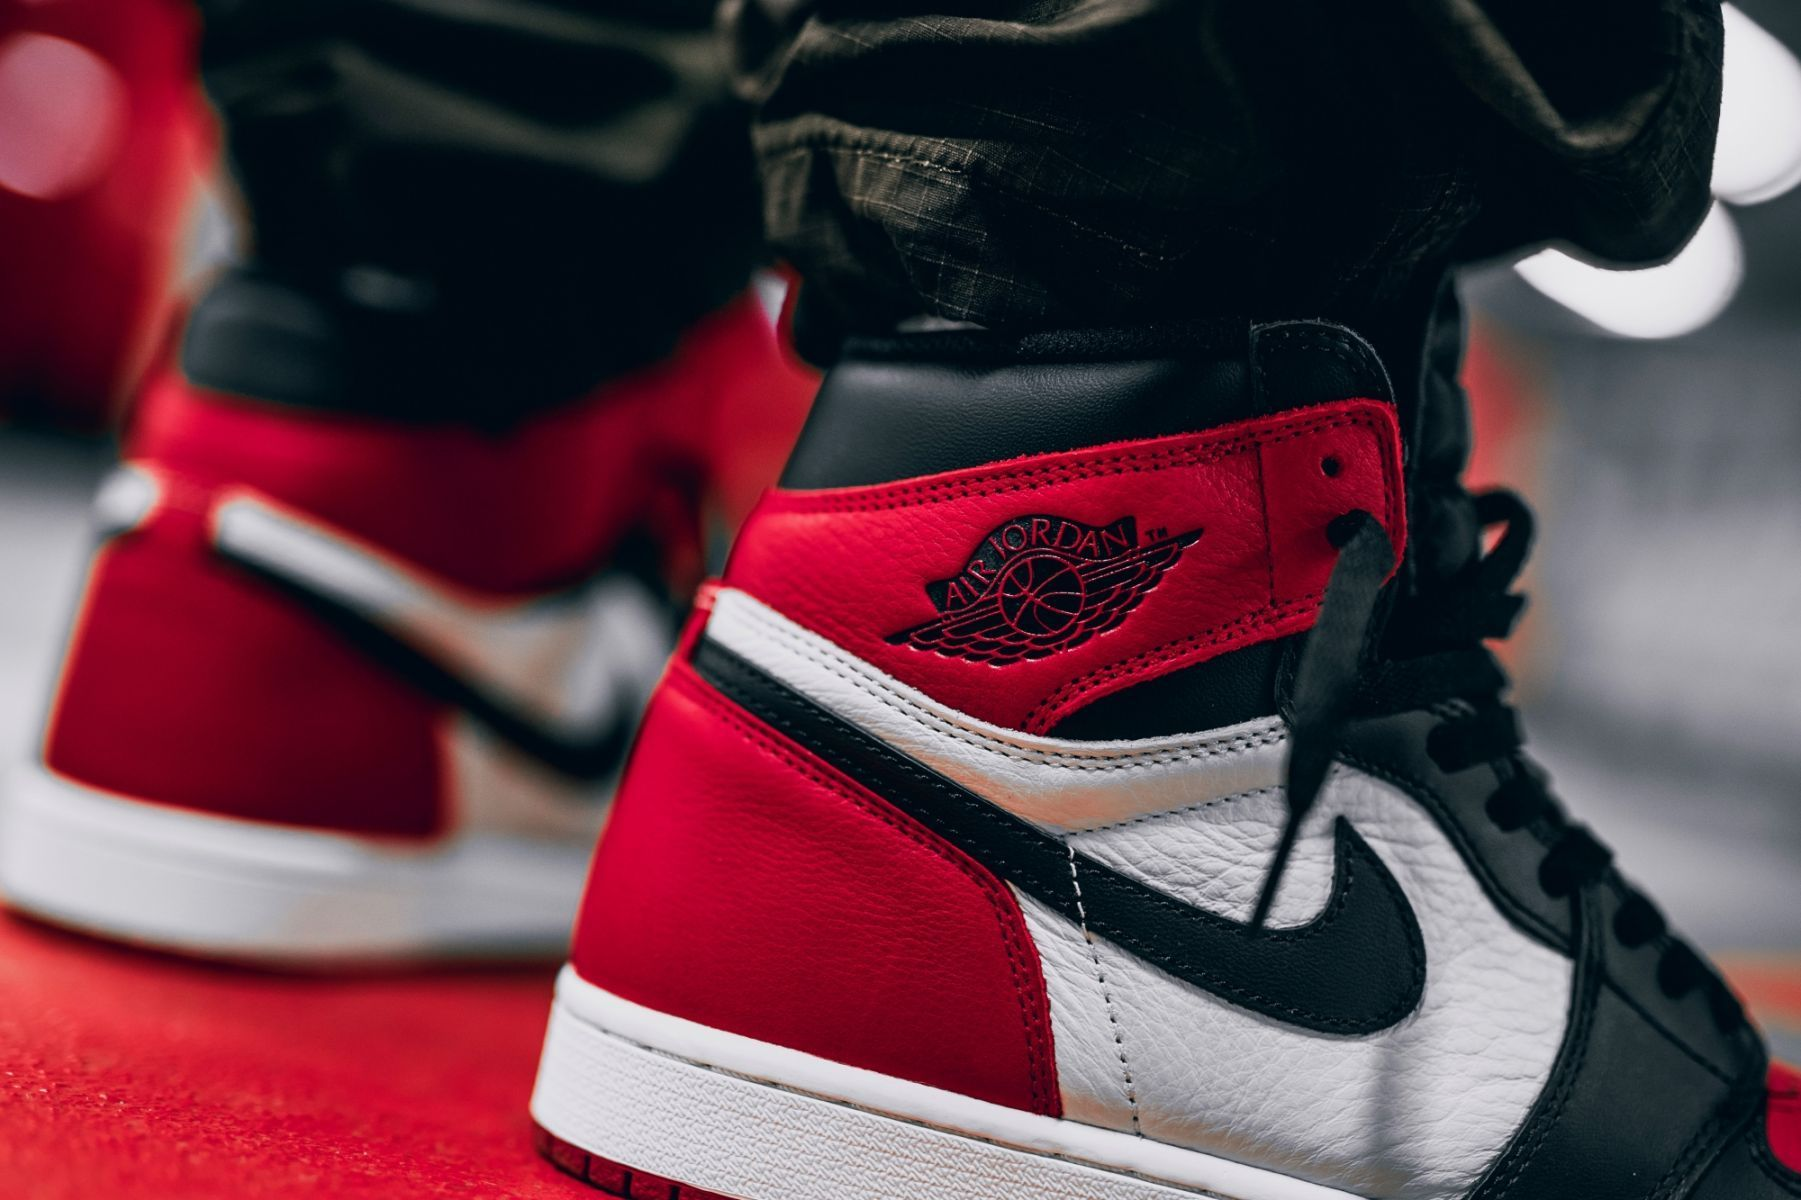 7e33231cda60 Air Jordan 1 High OG Bred Toe in 2019